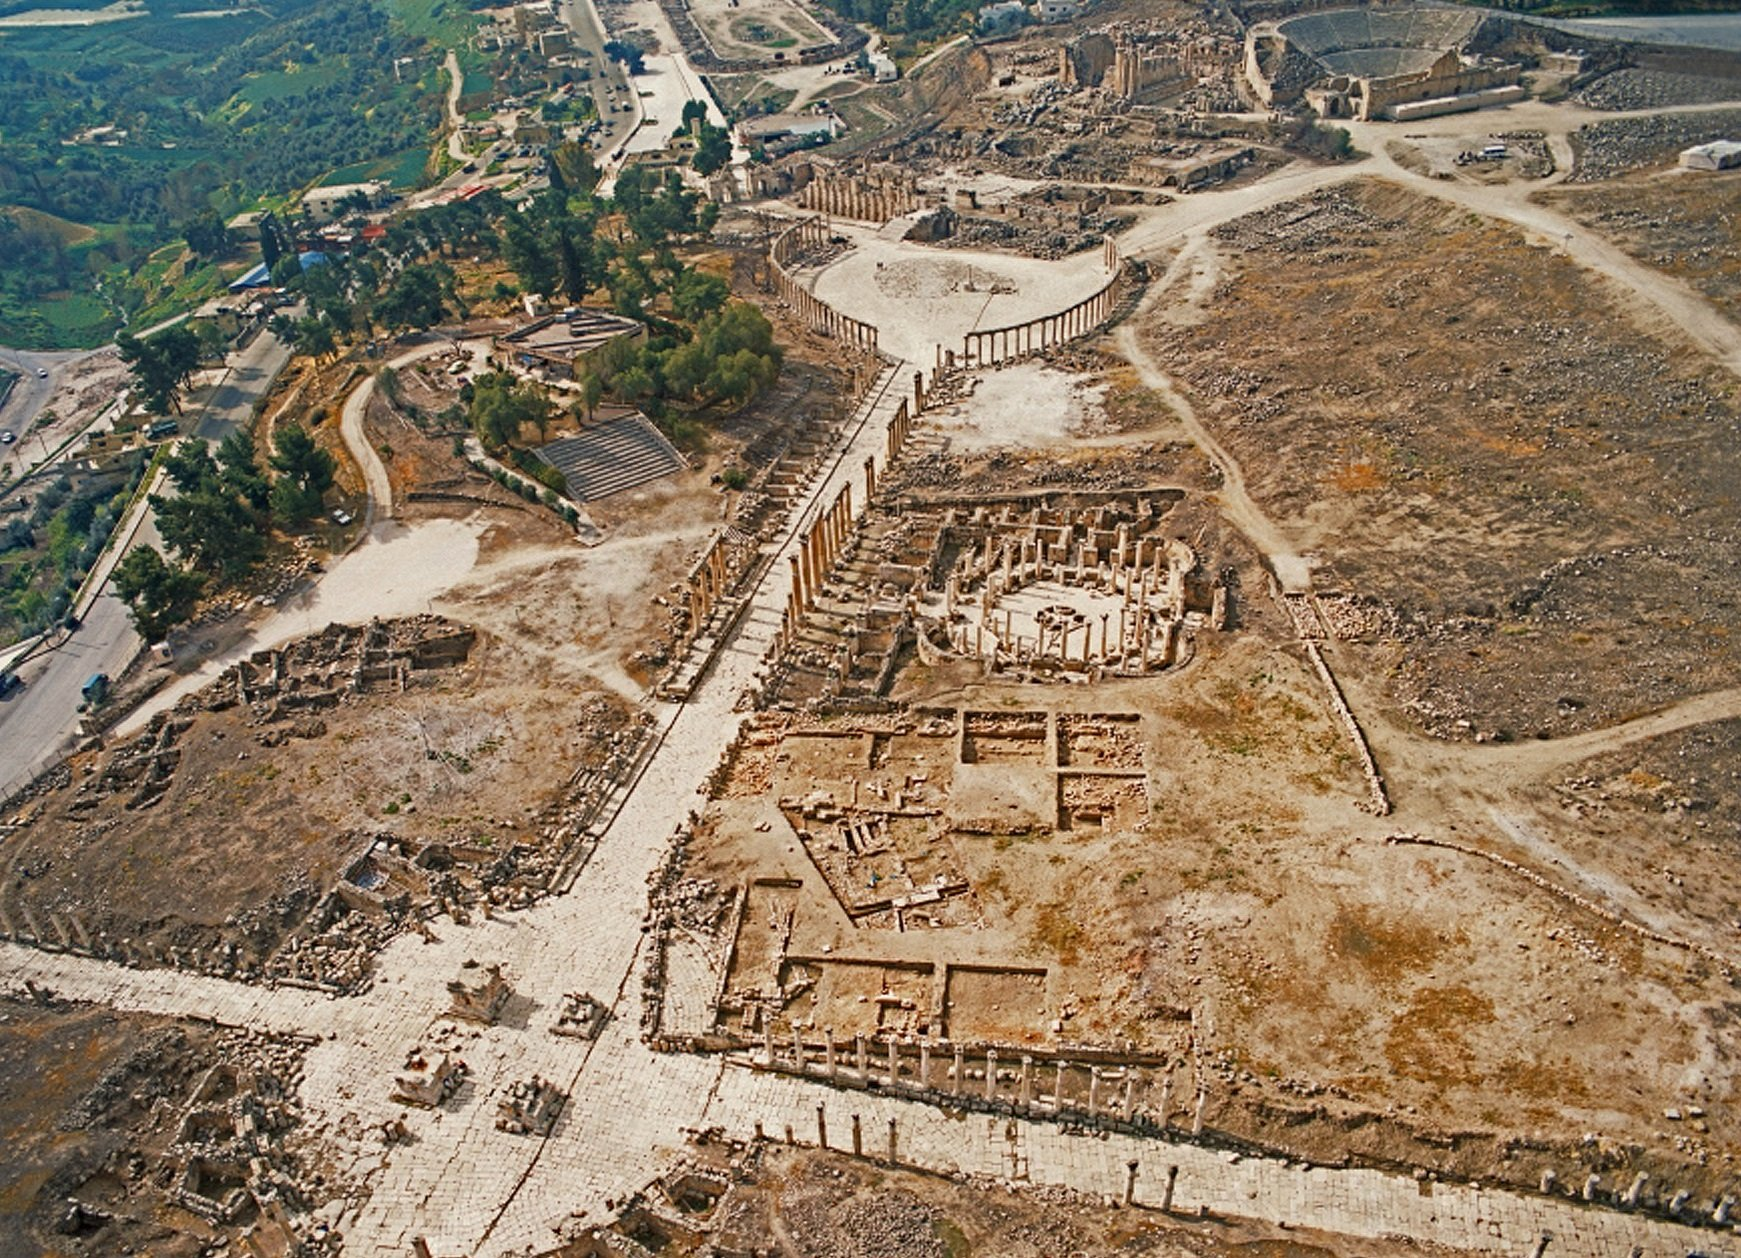 Aerial shot of Jerash featuring theatre and oval forum